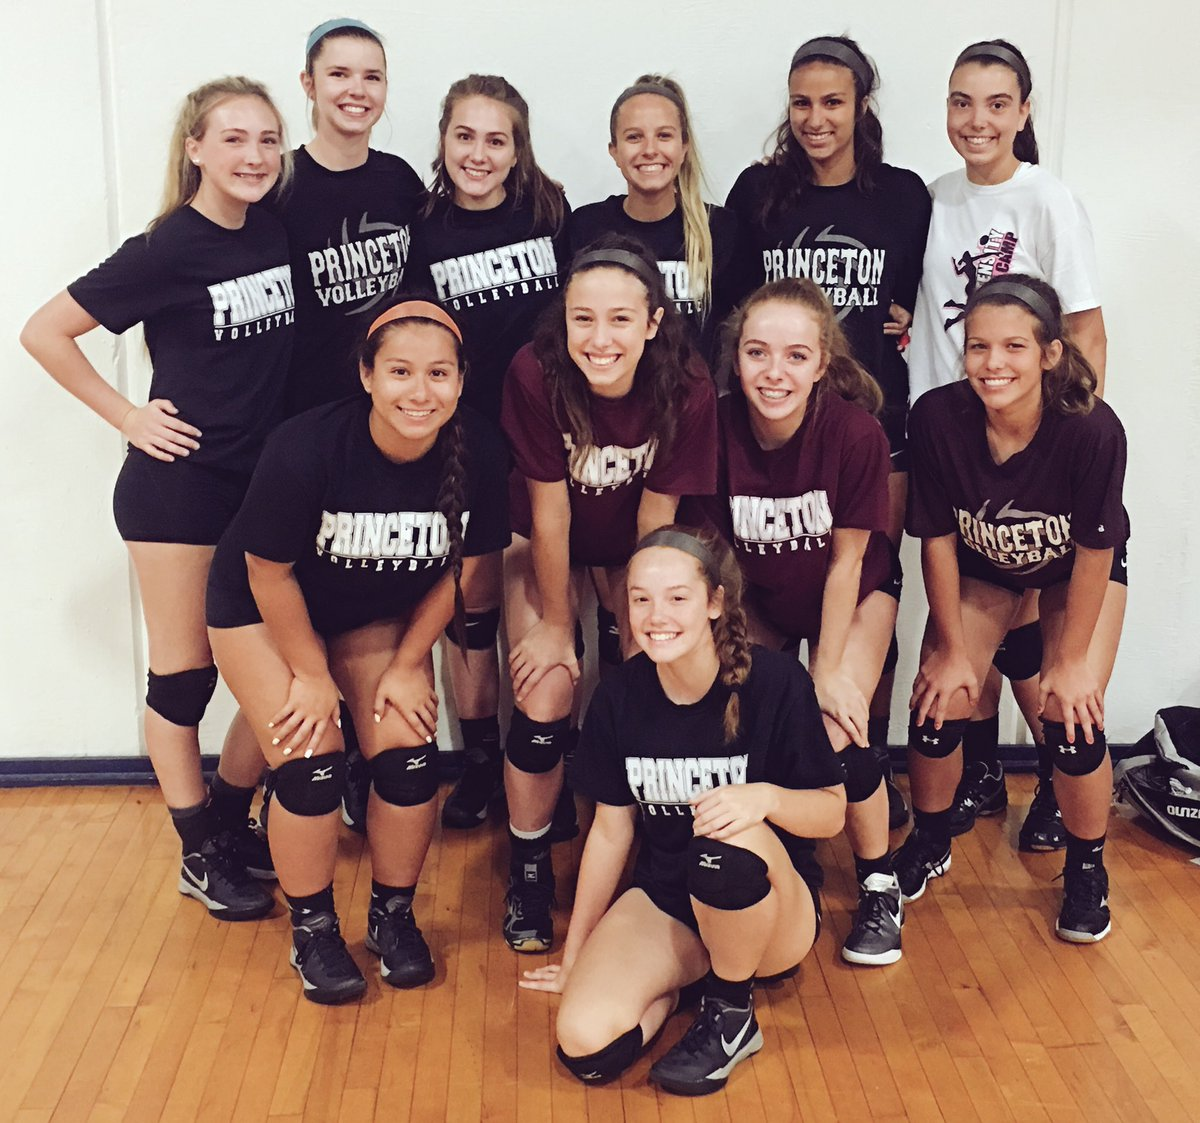 Princeton Volleyball On Twitter First Day Texas A M Commerce Volleyball Team Camp Way To Put In A Full Day S Work Together Family Ladypanthervolleyball Https T Co E627ckomrm